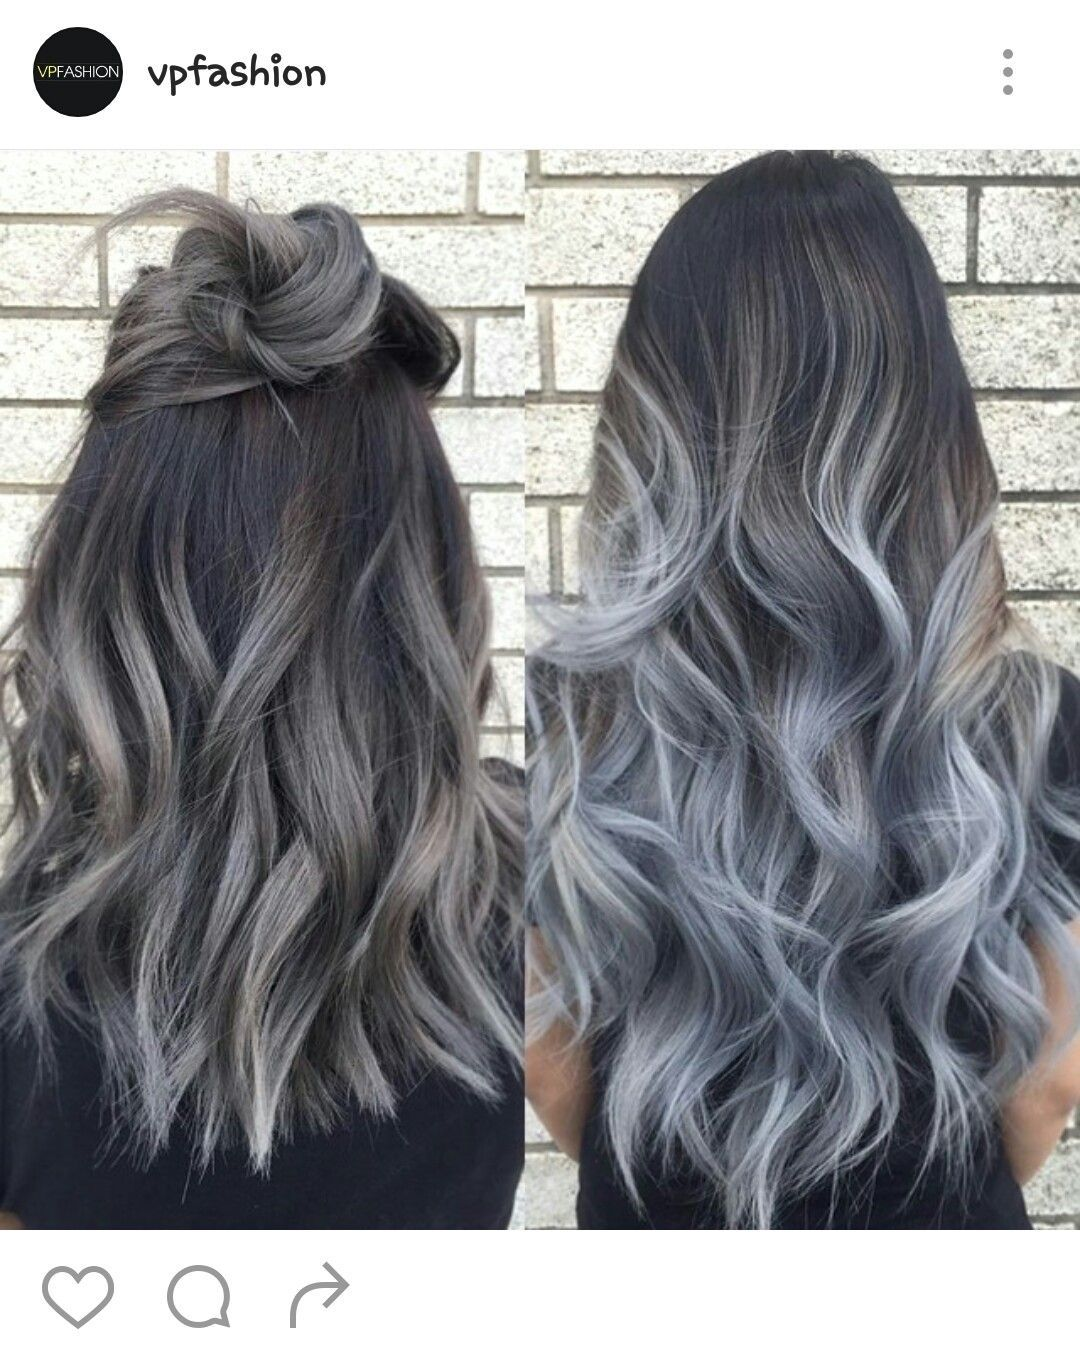 2020 New Gray Hair Wigs For African American Women Young Women With Grey Hair Grey Hair On Black Hair Grey Wigs For Elderly Ladies Frosted Hair For Gray Hair Gray Hair At 25